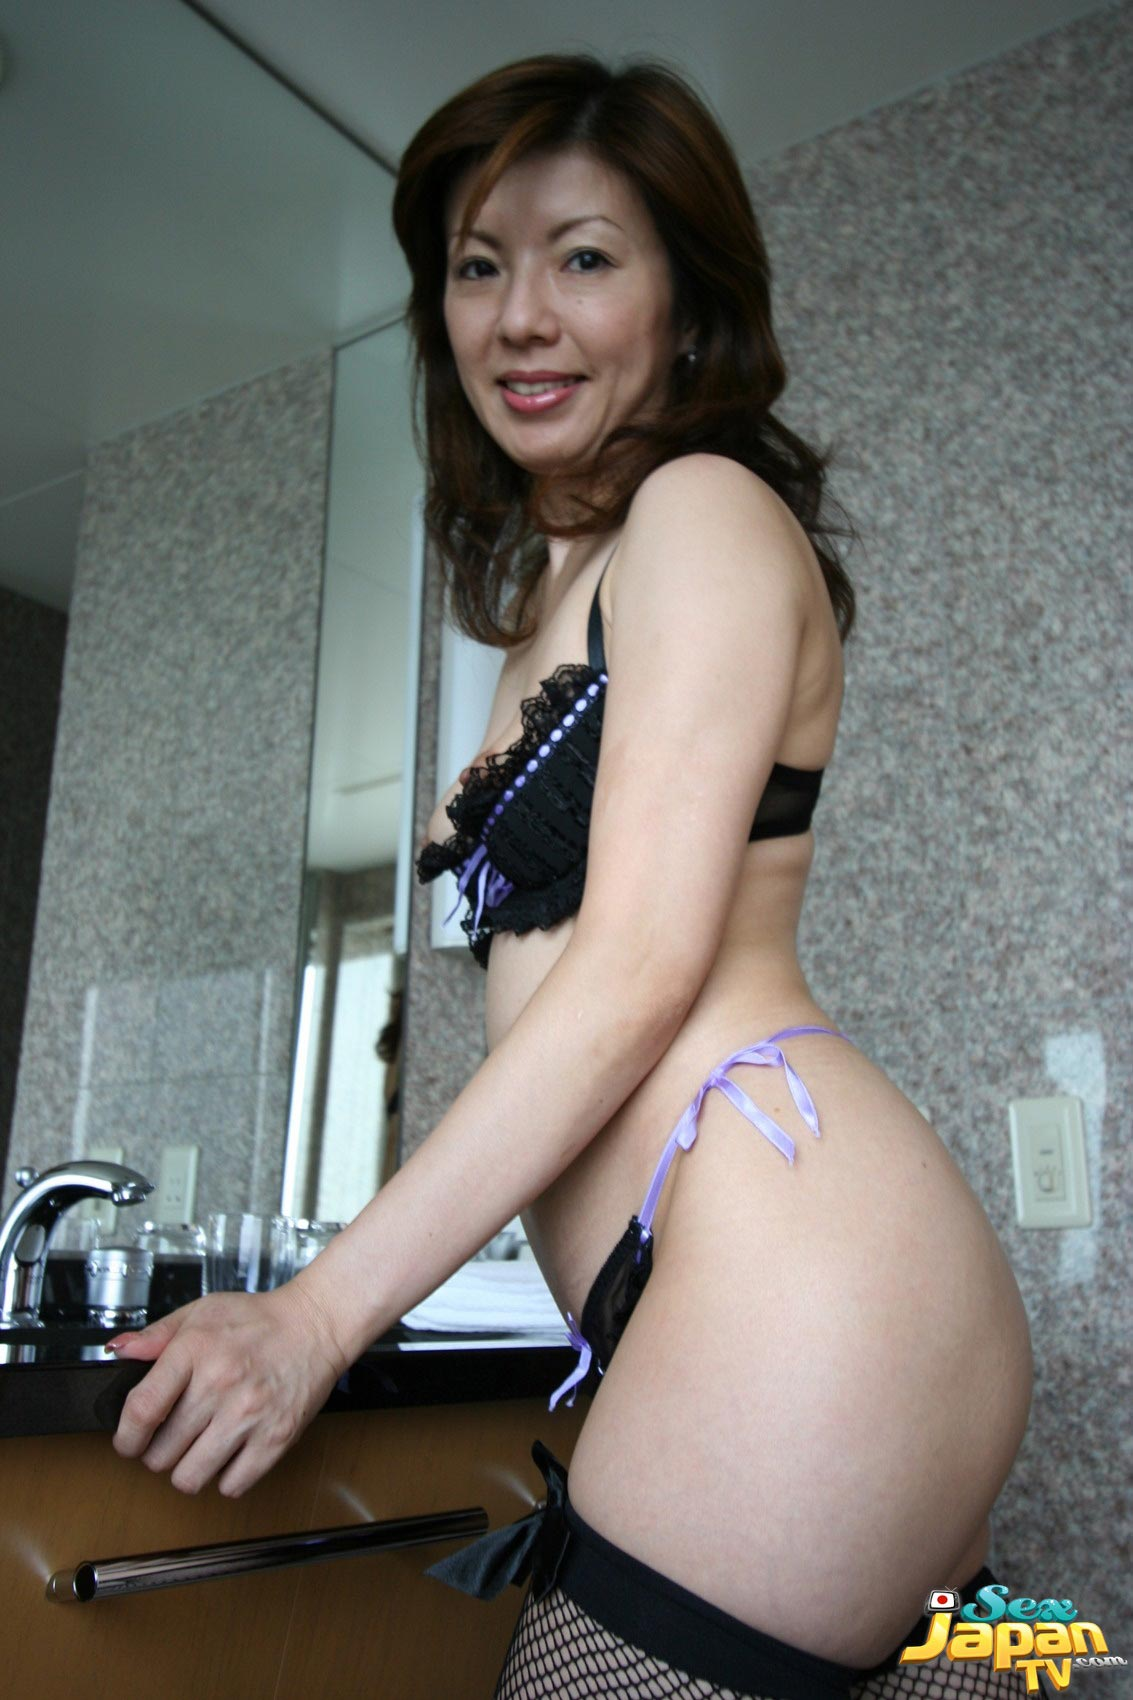 Babe milf japanese girls without panties